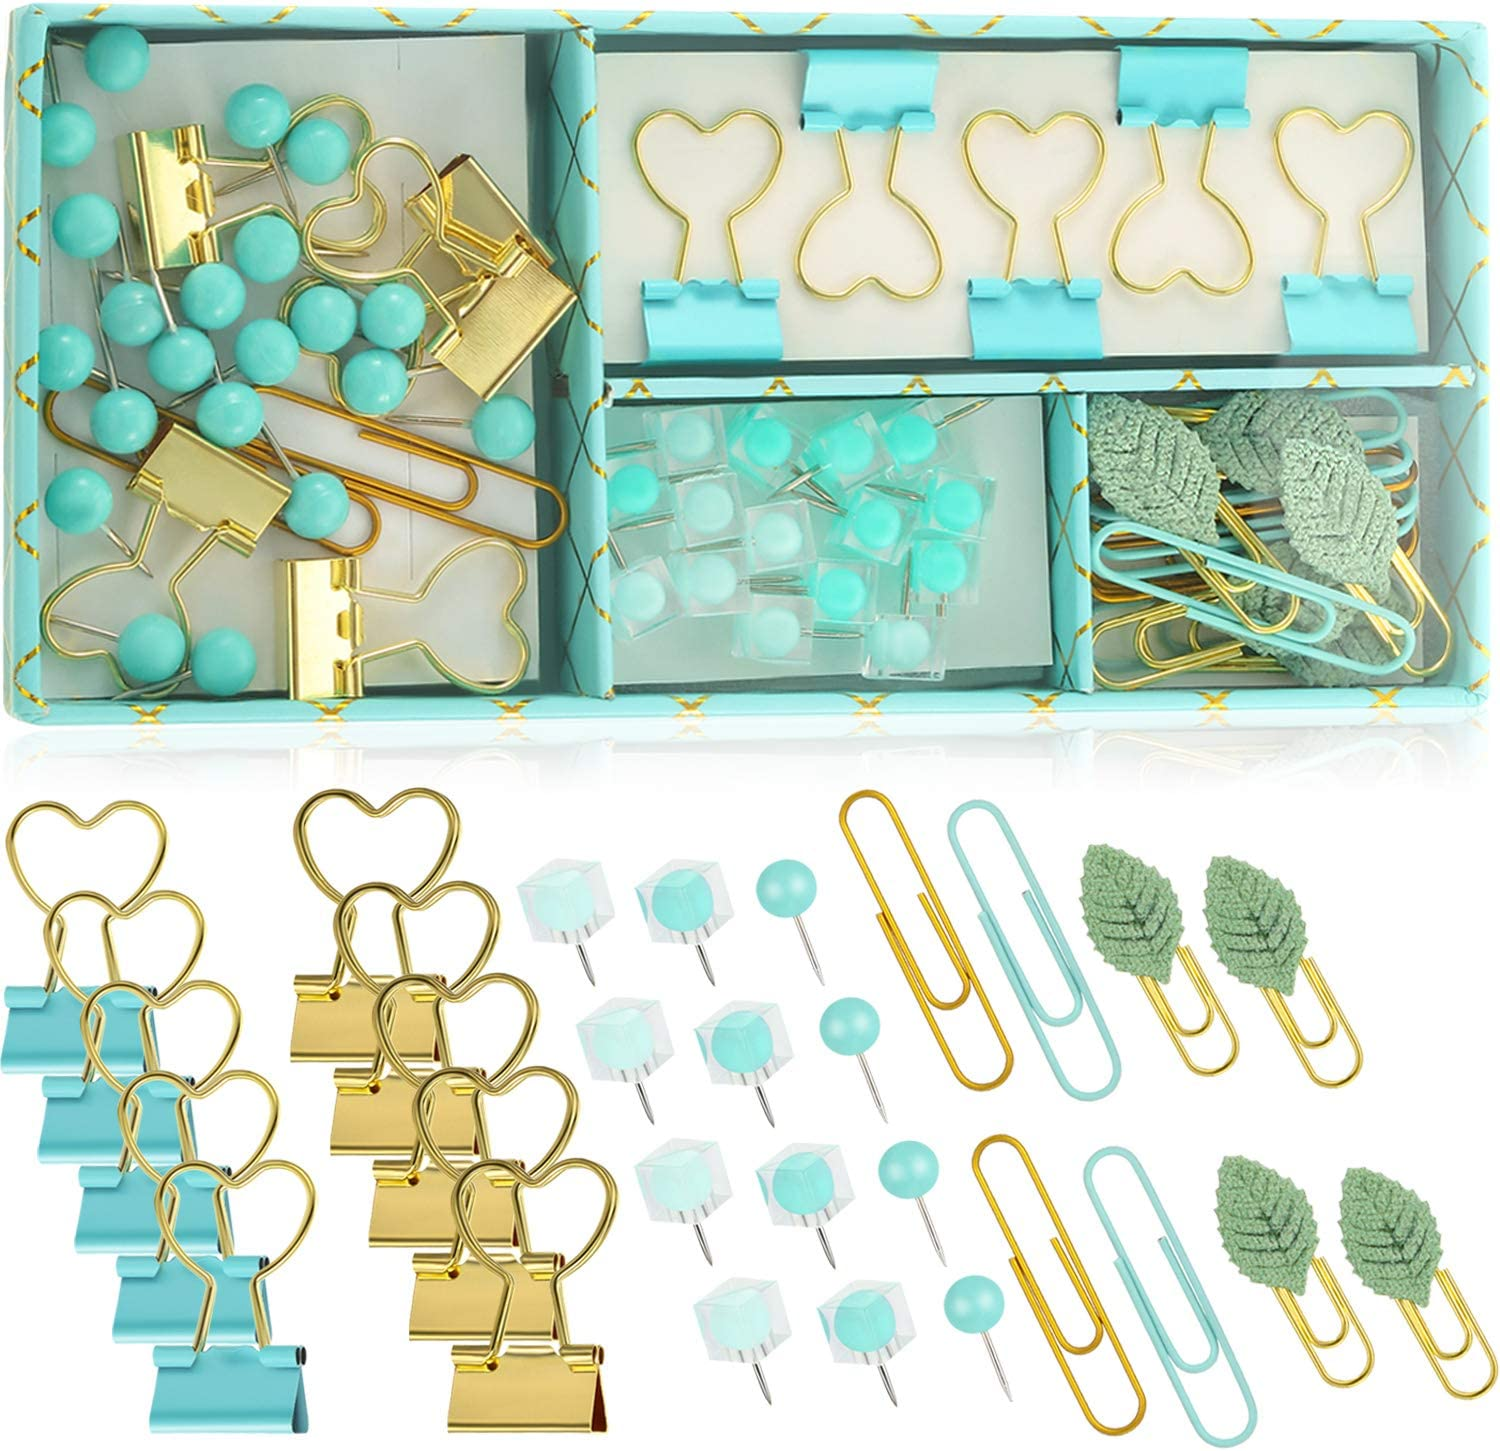 62 Pieces Heart-Shaped Blue Gold Binder, Square Bead Head Map Pushpin Pin Cute Leaf Paper Clip for Books Photos Cards School Office Supplies